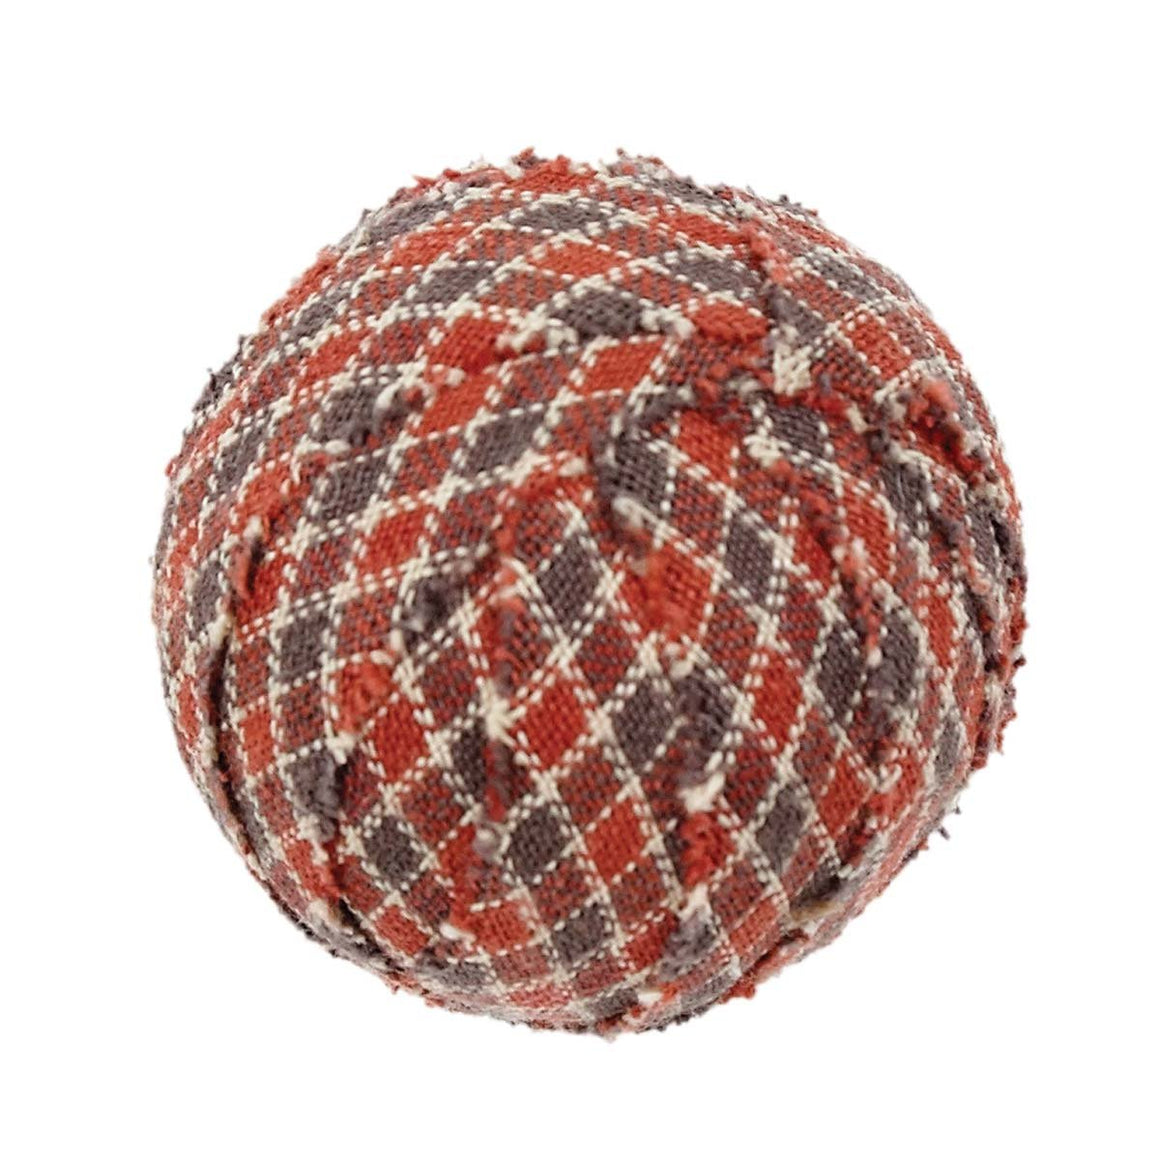 "Tacoma Fabric Ball #1-1.5"" Set of 6"